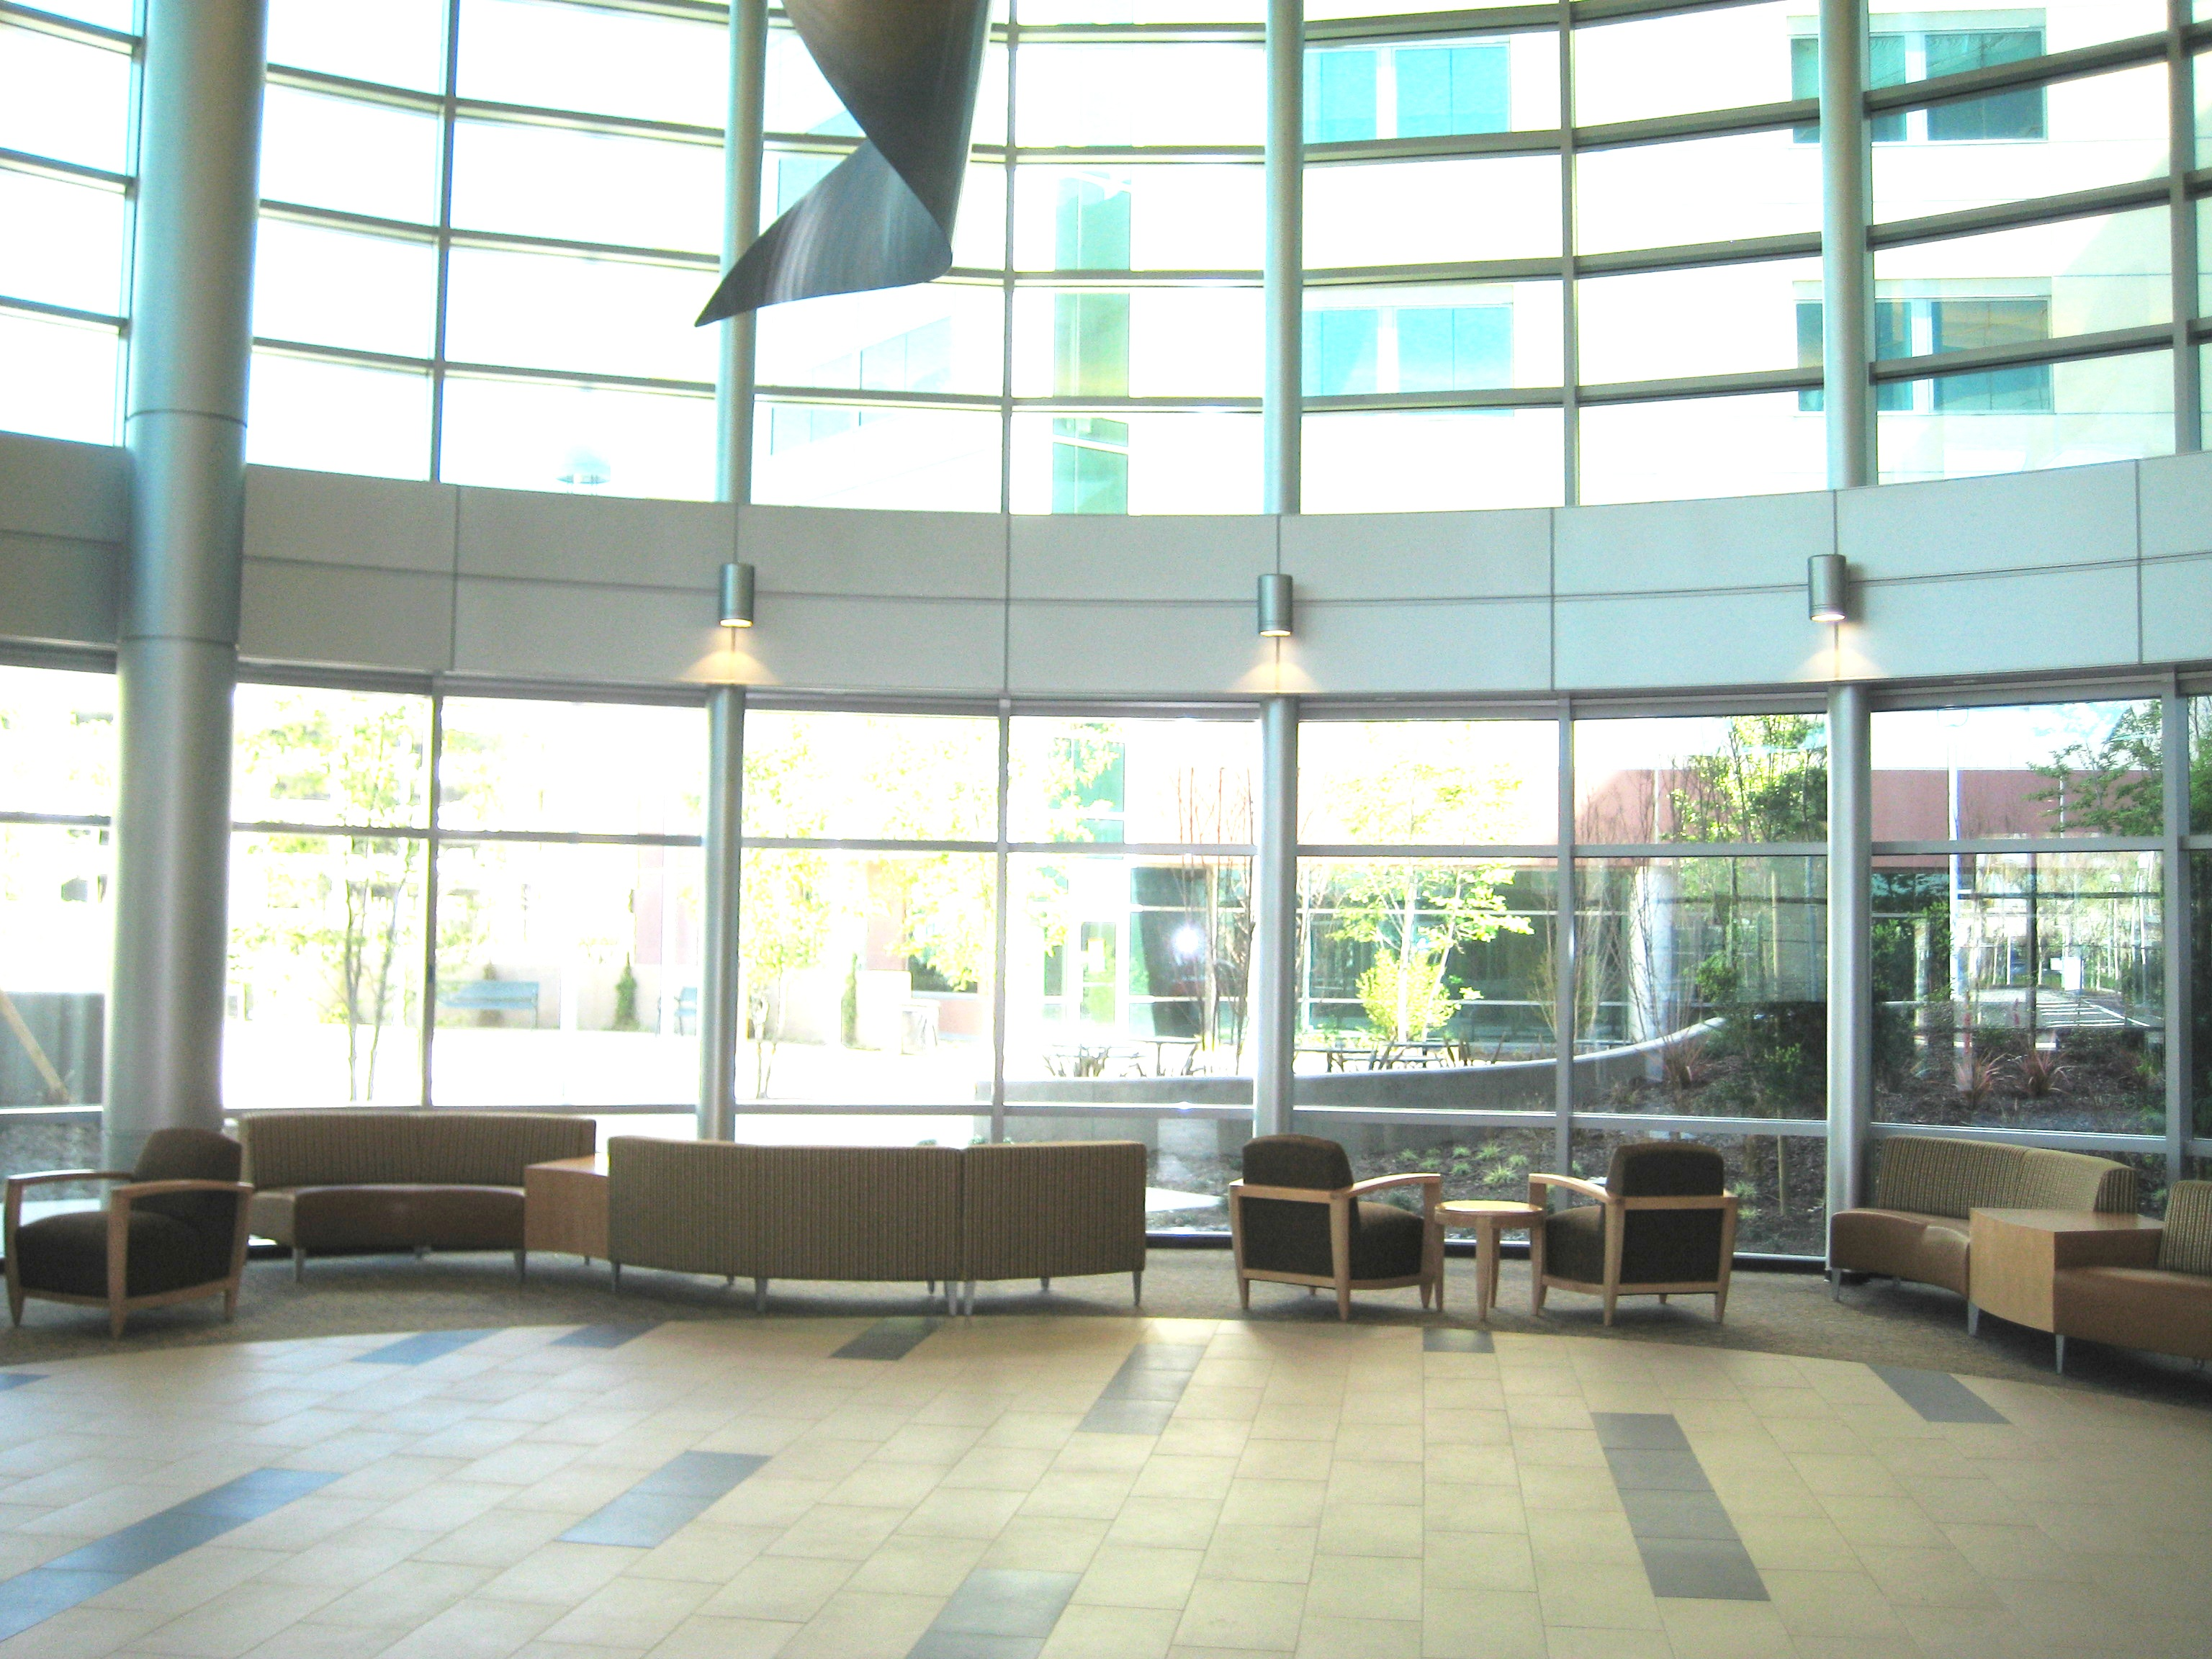 interior of modern looking hospital lobby with high feelings and glass walls